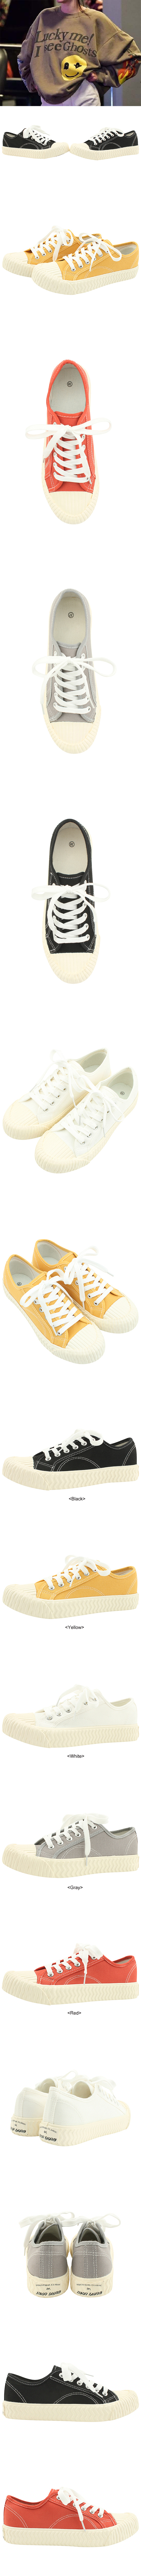 Canvas Painting Pastel Tone Sneakers Yellow